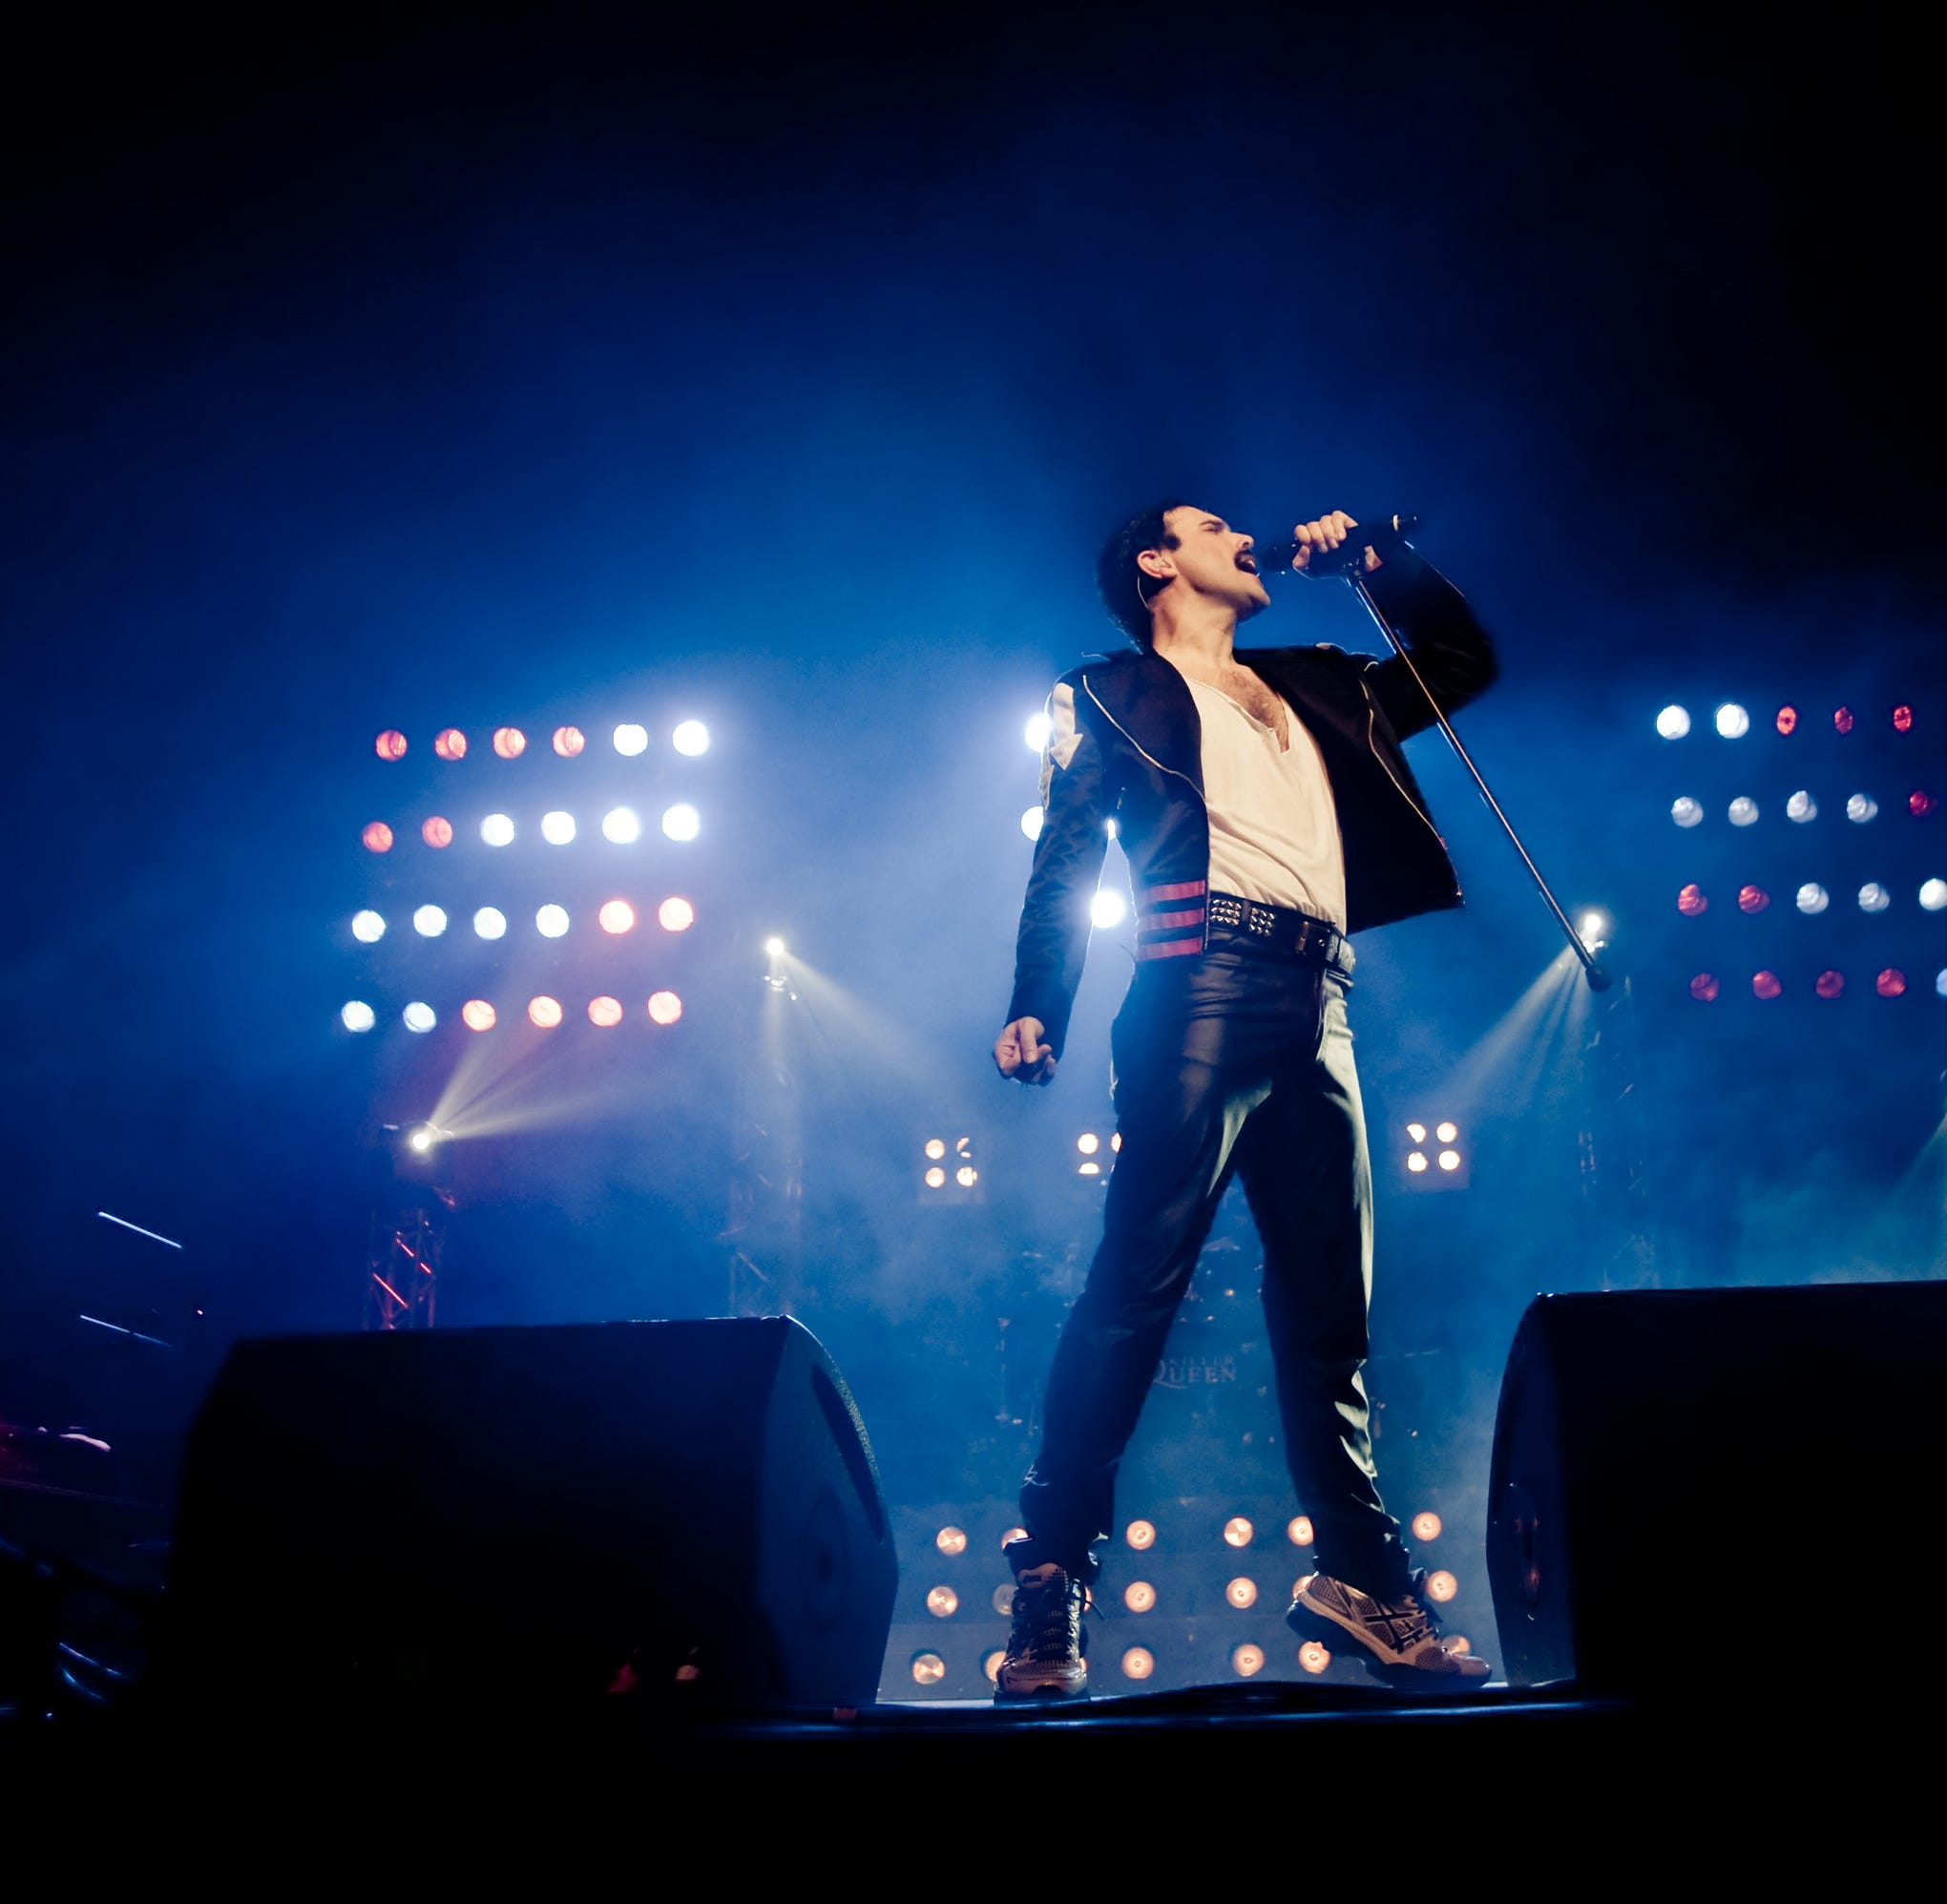 Queen tribute band Killer Queen to perform at Orpheum Theater in Sioux Falls